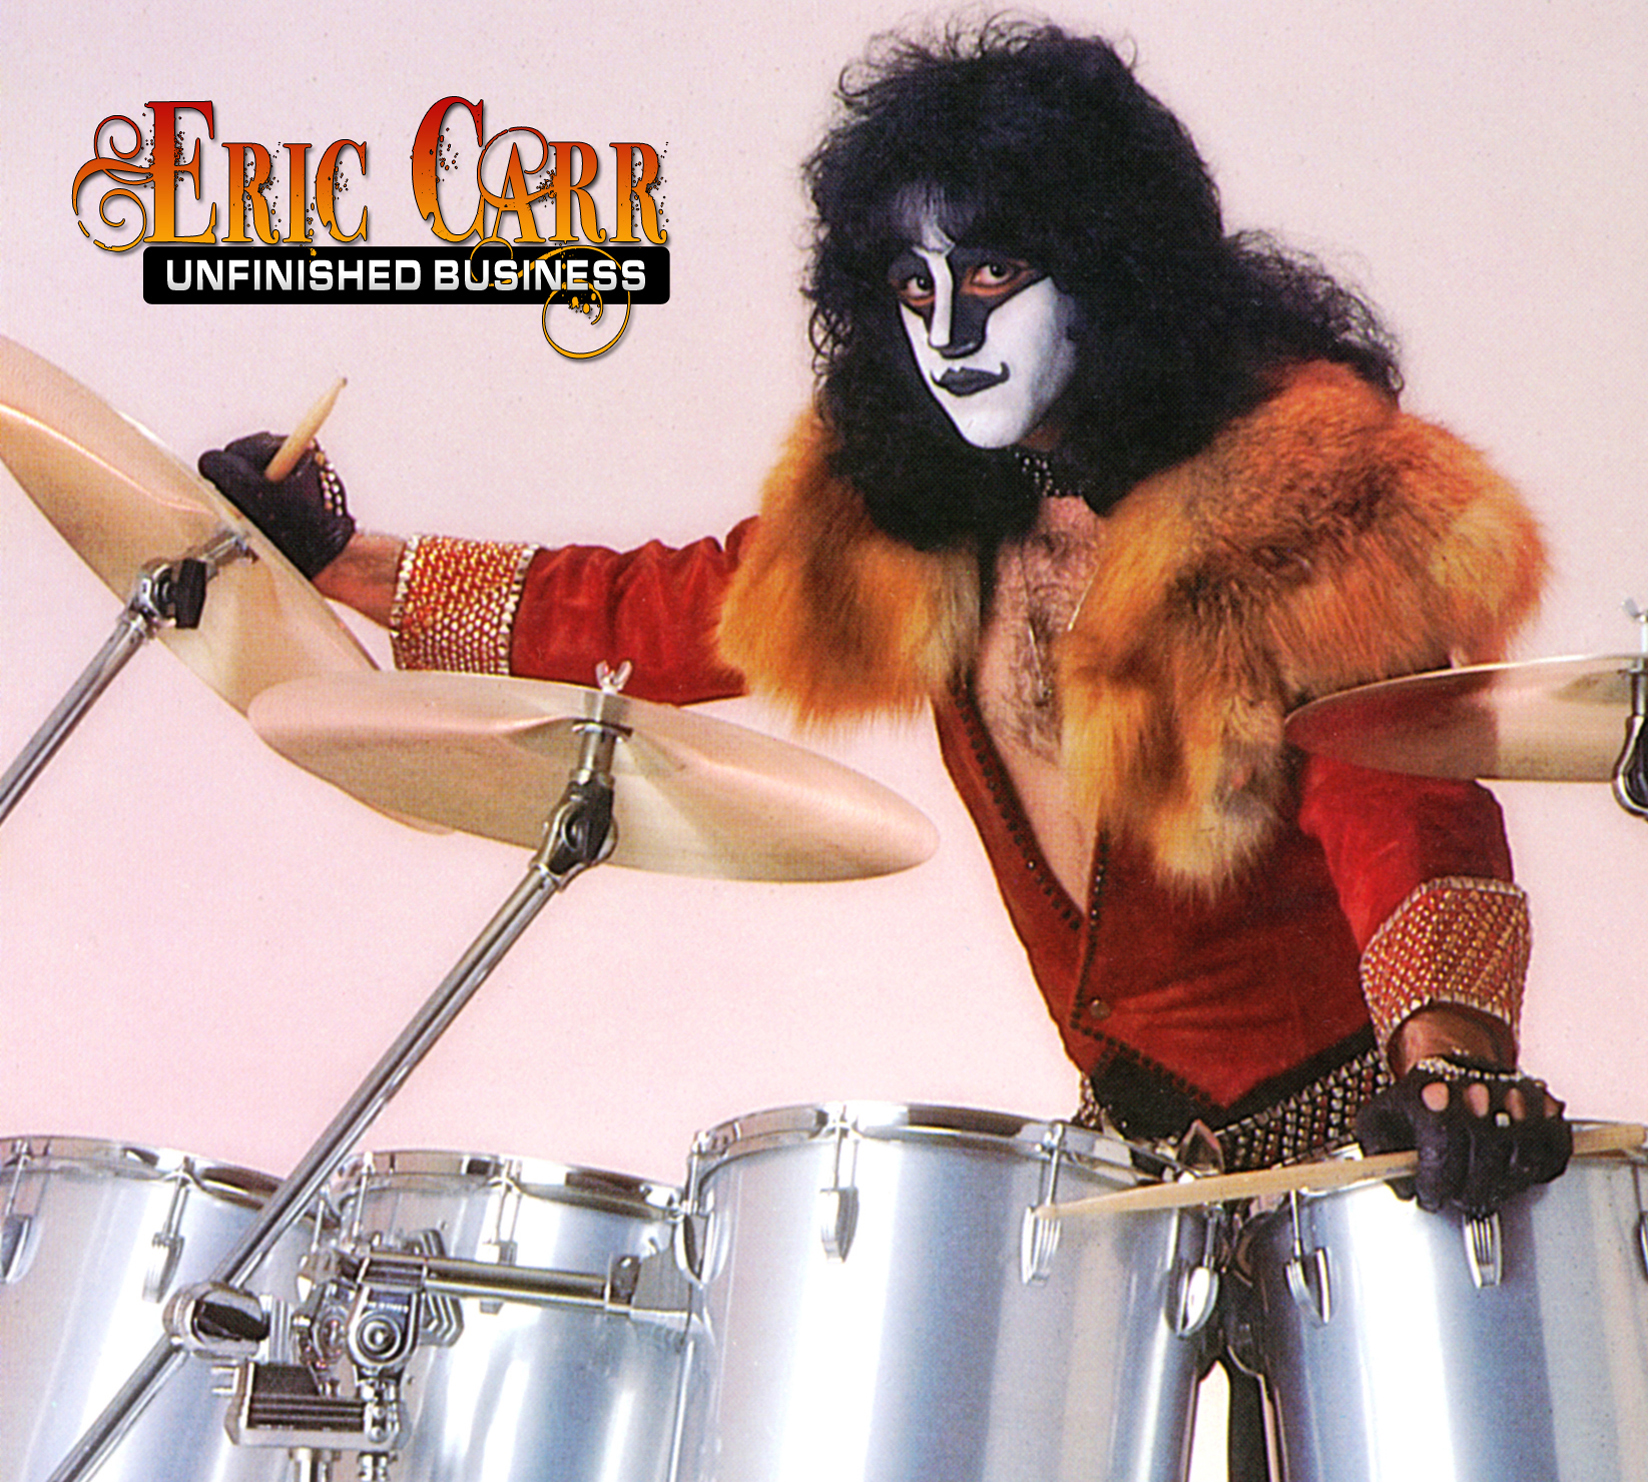 Eric Carr unfinished business Cover_EricCarr-unfinishedBusiness